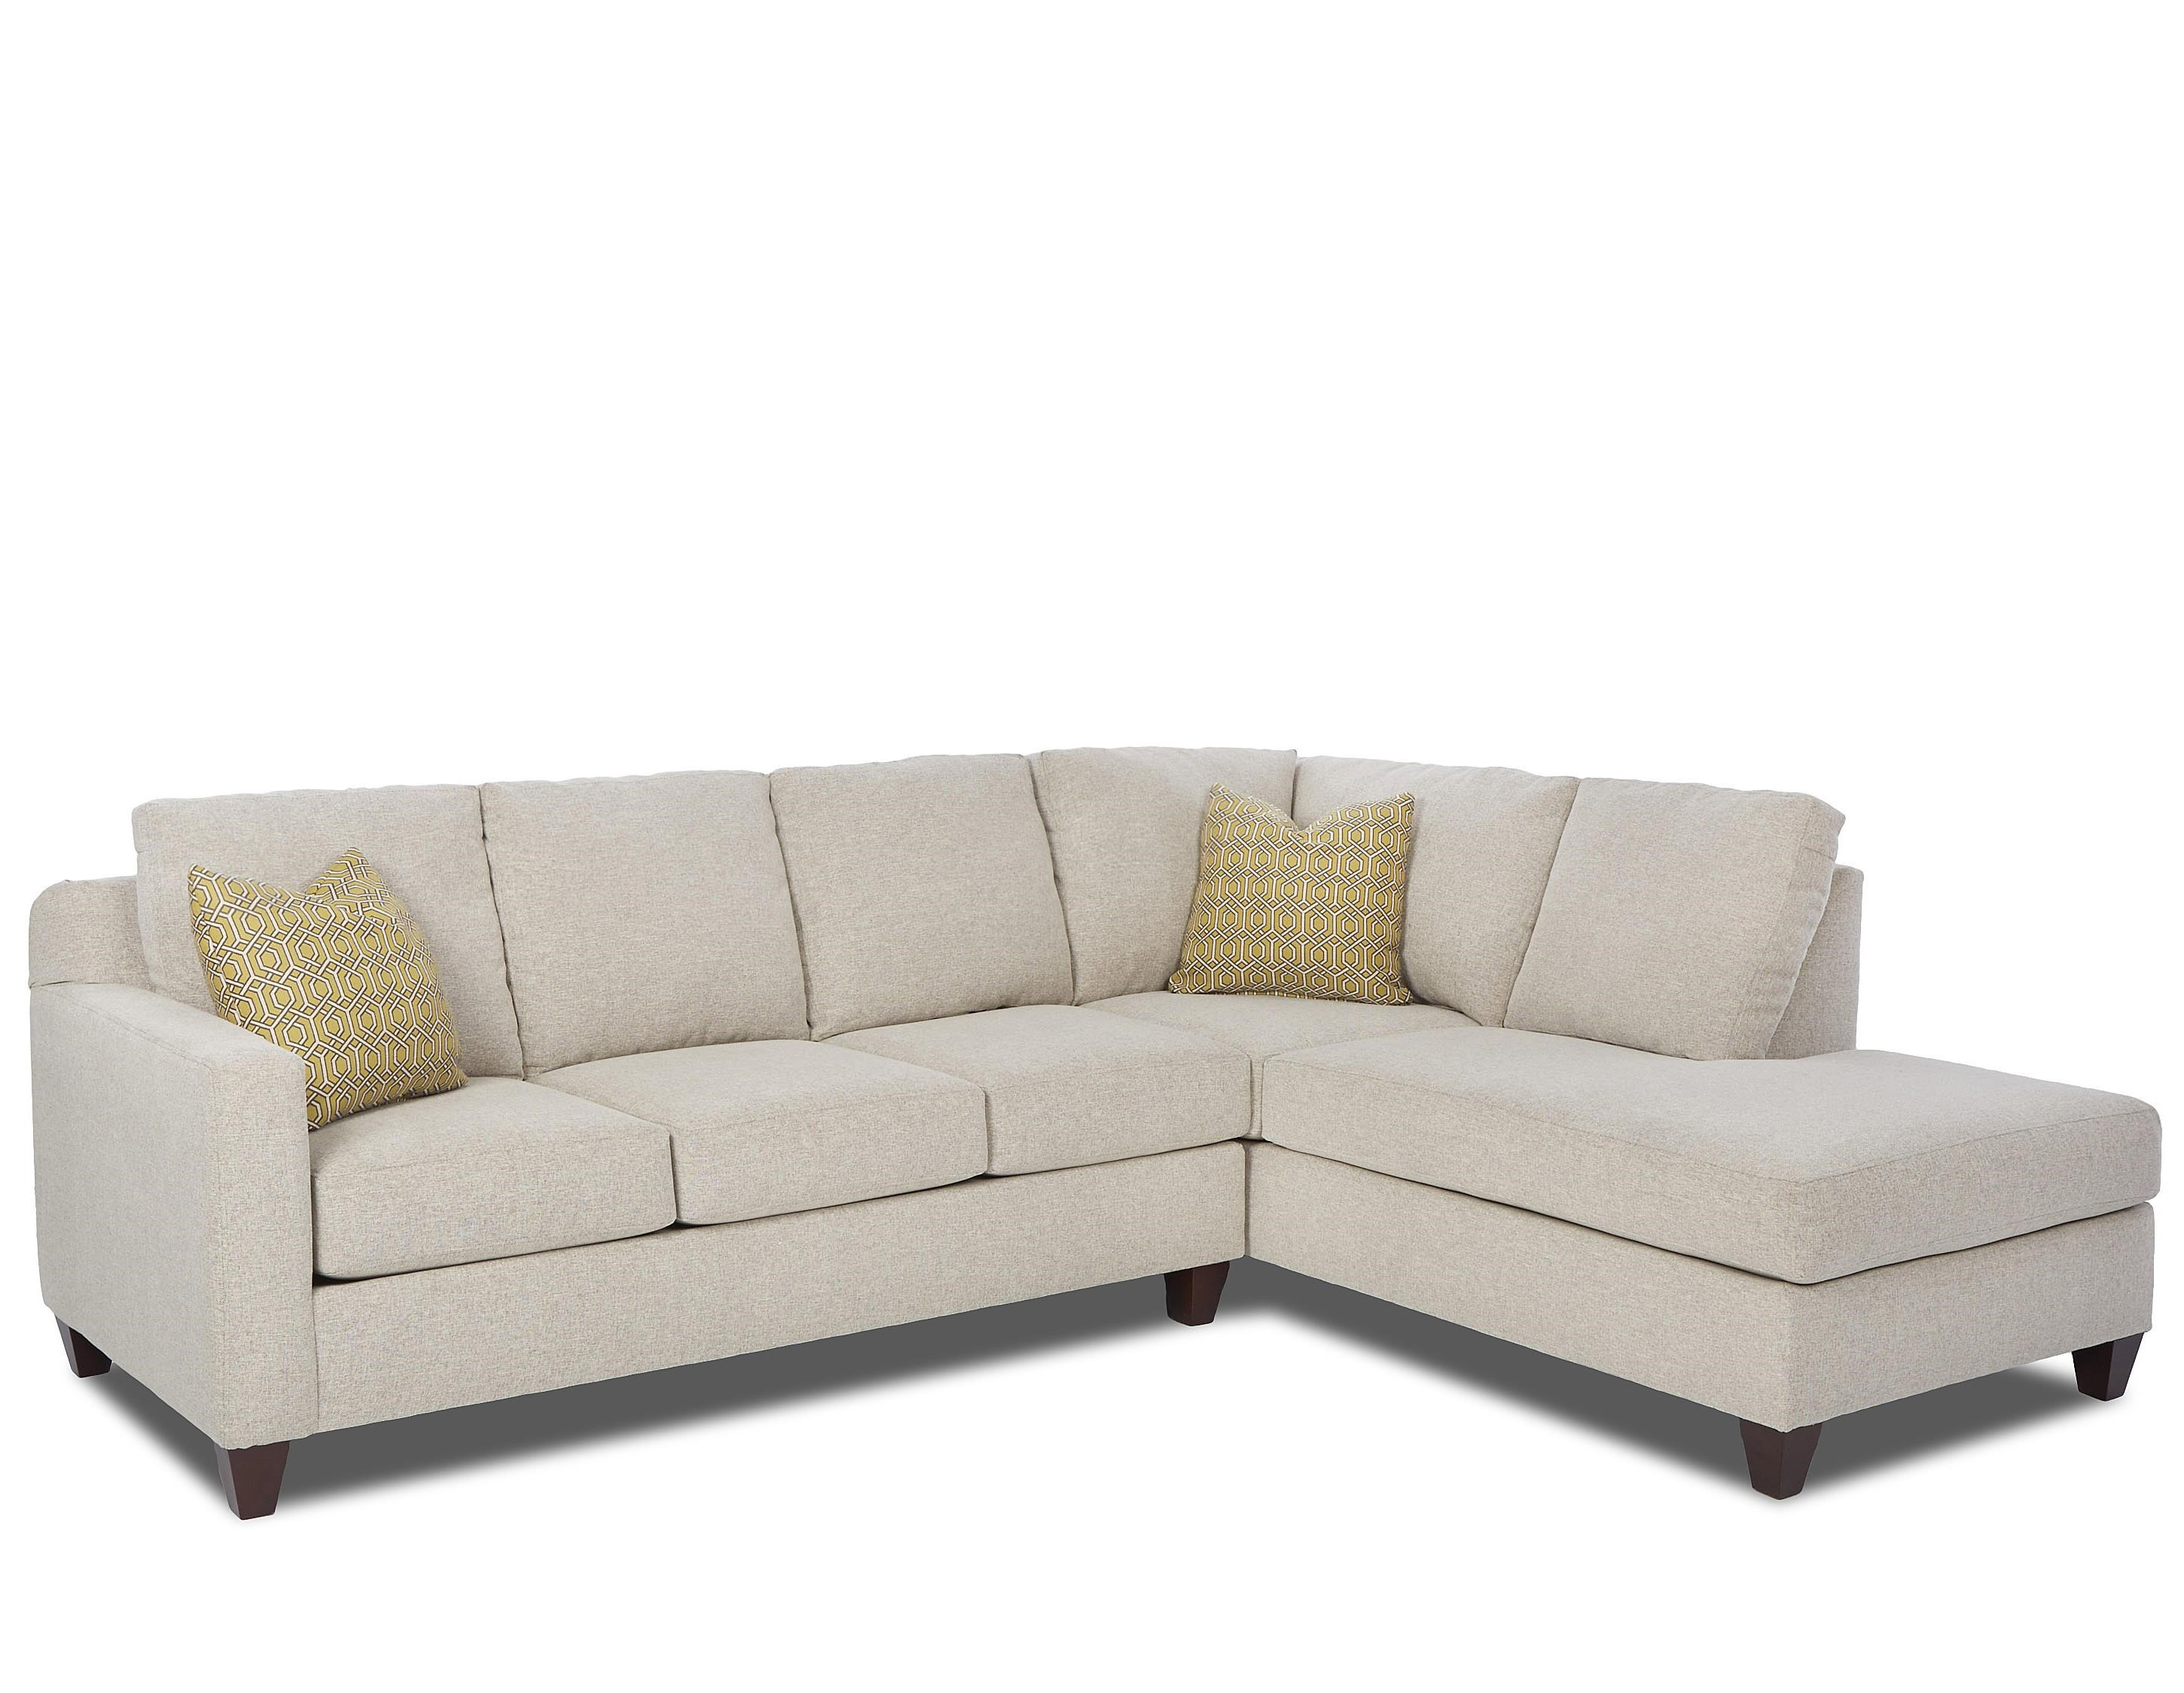 Klaussner Bosco Contemporary 2 Piece Sectional With Right